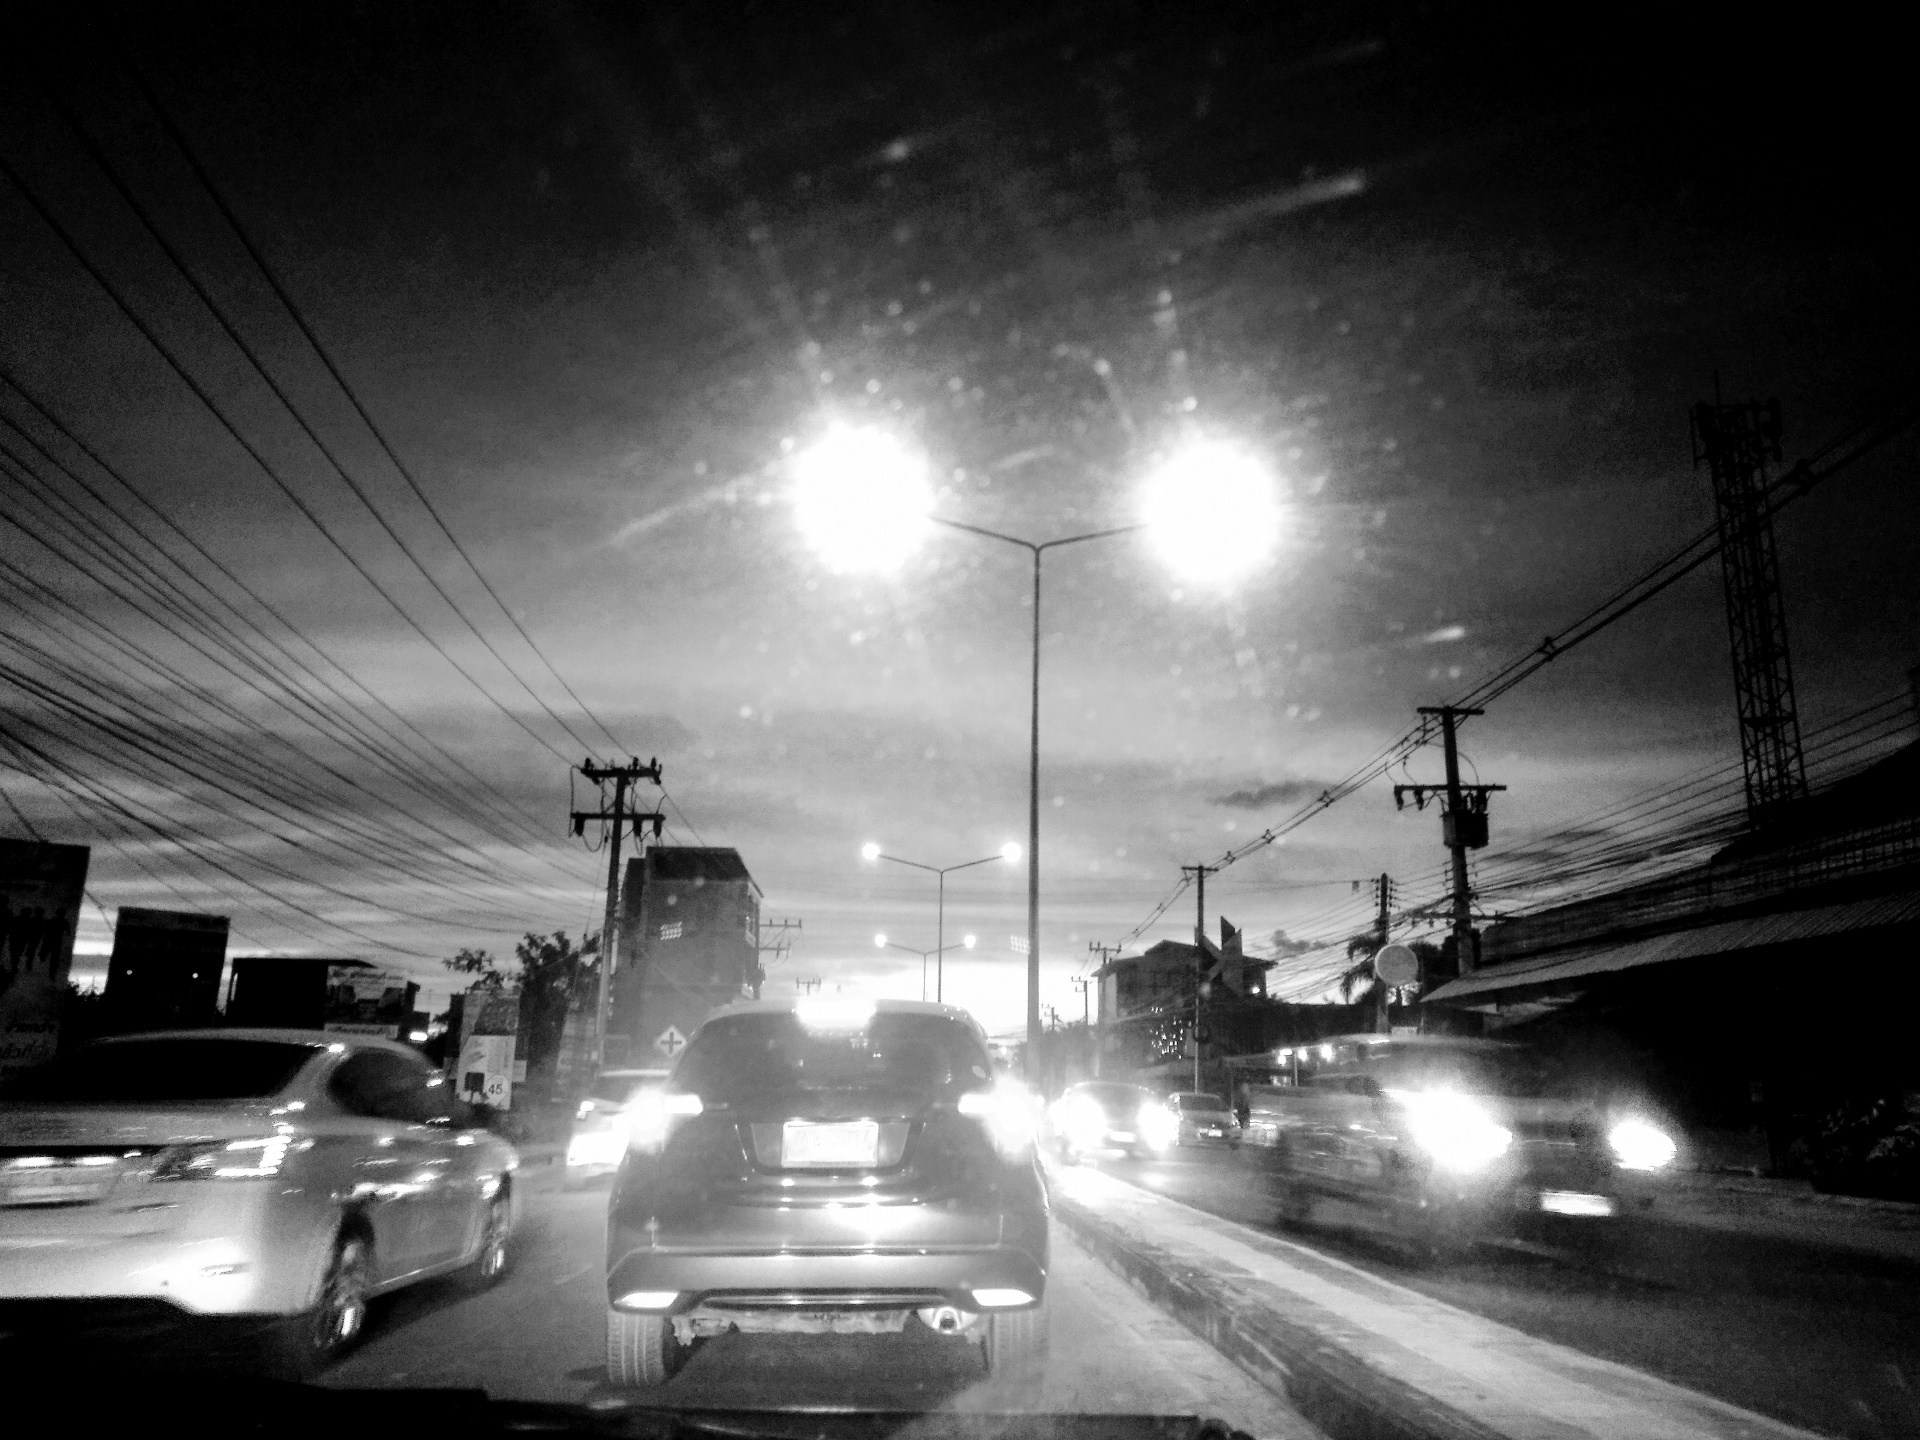 night-driving-black-and-white